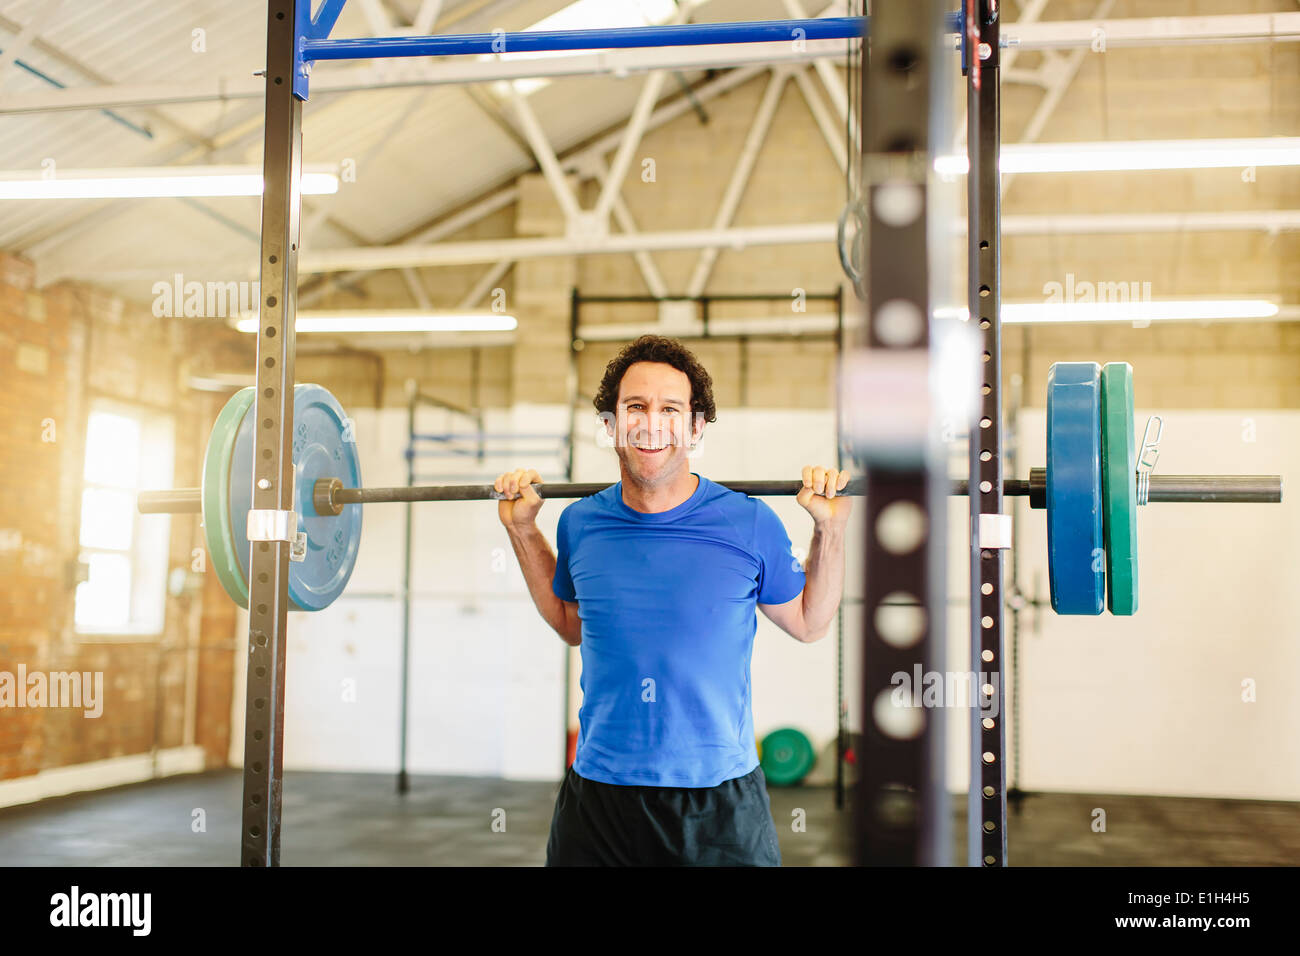 Man lifting barbell in gym Photo Stock